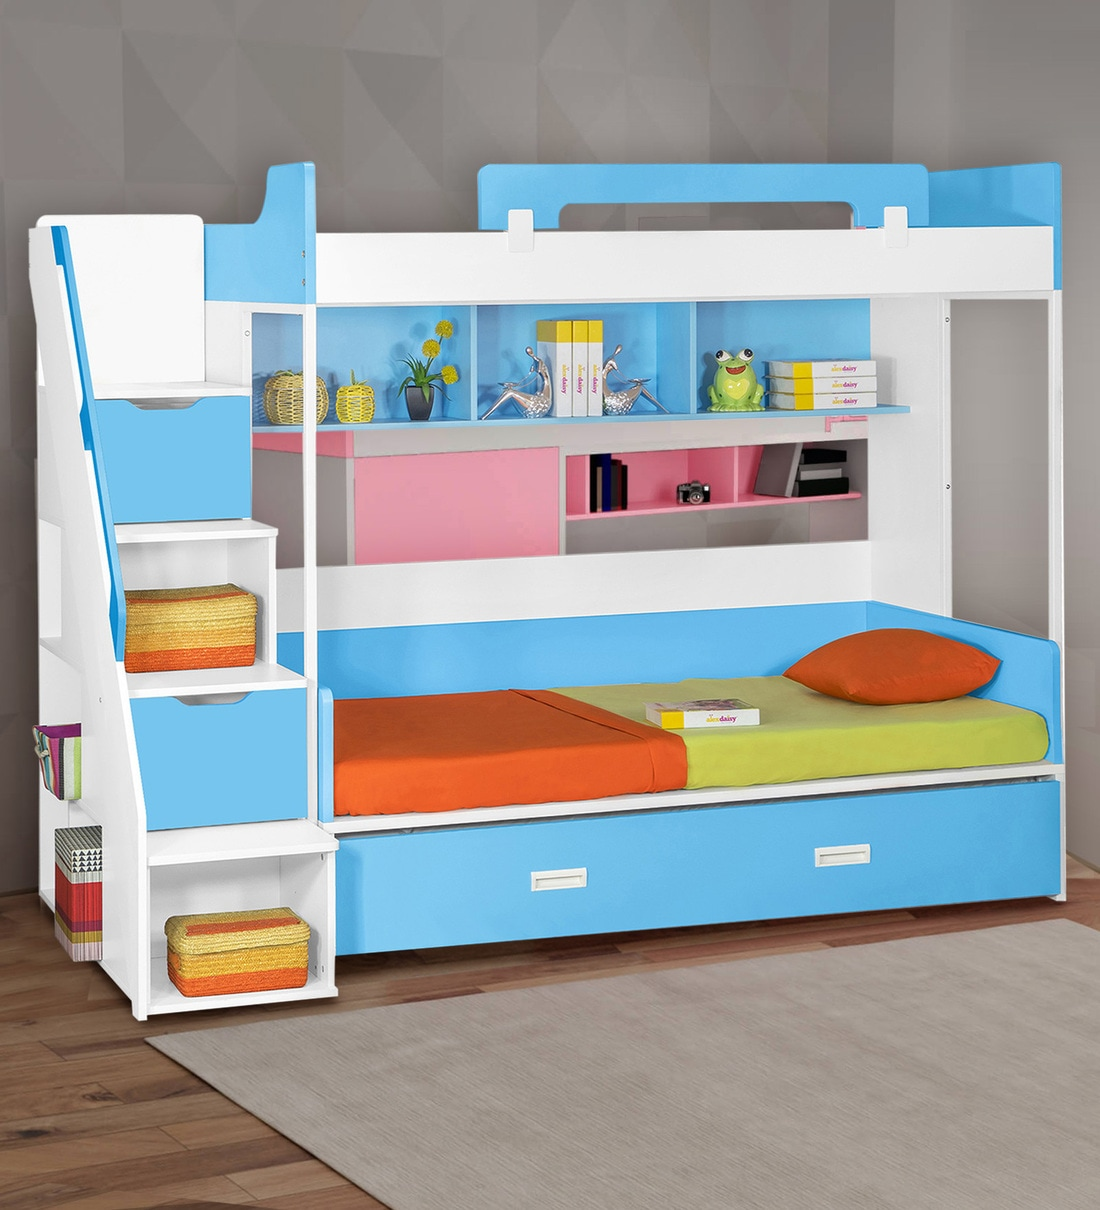 Buy Milano Bunk Bed In Blue By Alex Daisy Online Trundle Bunk Beds Bunk Beds Kids Furniture Pepperfry Product